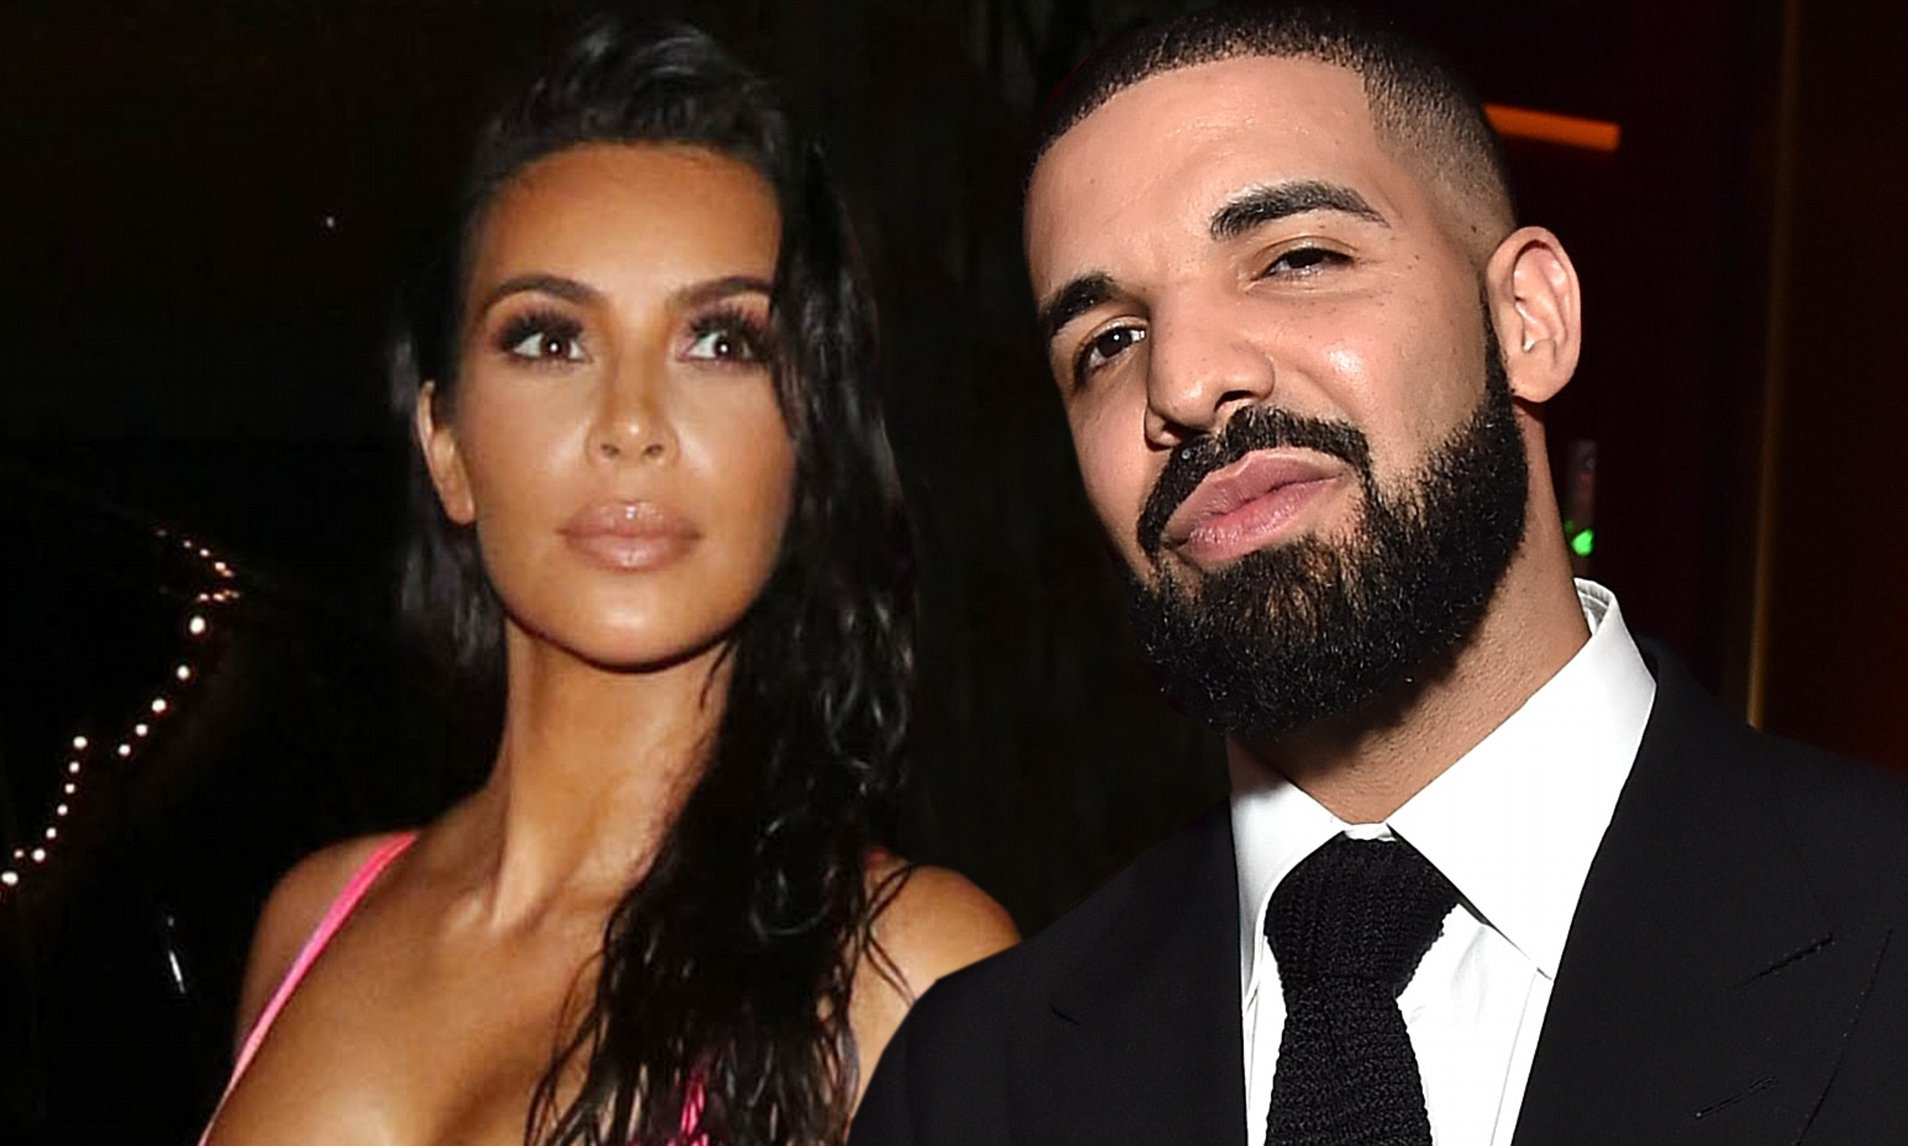 4fa75c14000005780imagea281535940329477 1.jpg?resize=1200,630 - Drake Is After Newly-Single Kim Kardashian And Can't Wait To 'See Her Whenever She Says The Word', Insider Says